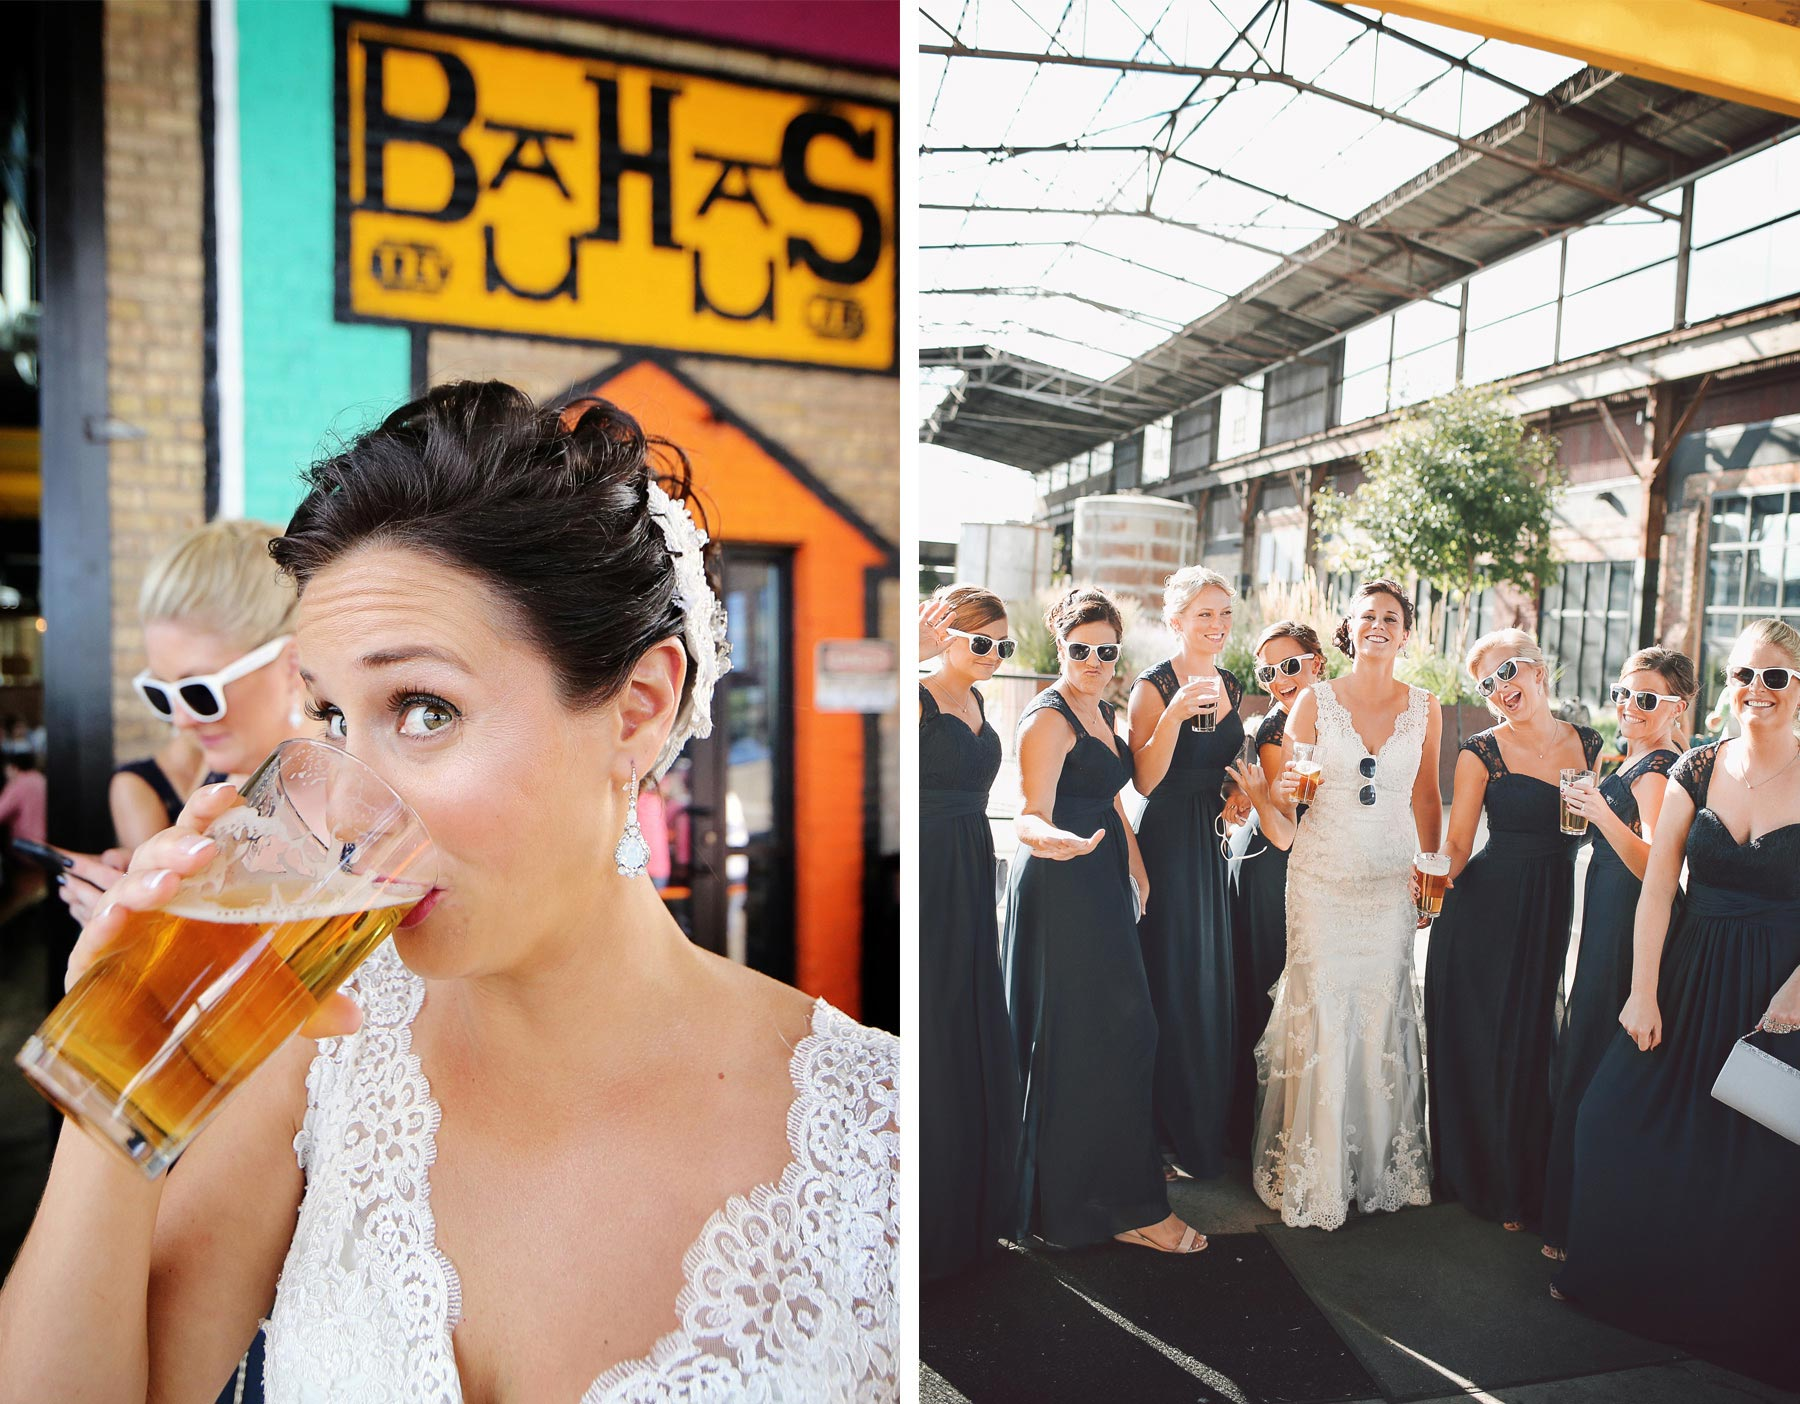 16-Minneapolis-Minnesota-Wedding-Photographer-by-Andrew-Vick-Photography-Summer-Bauhaus-Brew-Labs-Brewery-Bride-Bridesmaids-Beer-Drinks-Vintage-Ashley-and-Eric.jpg